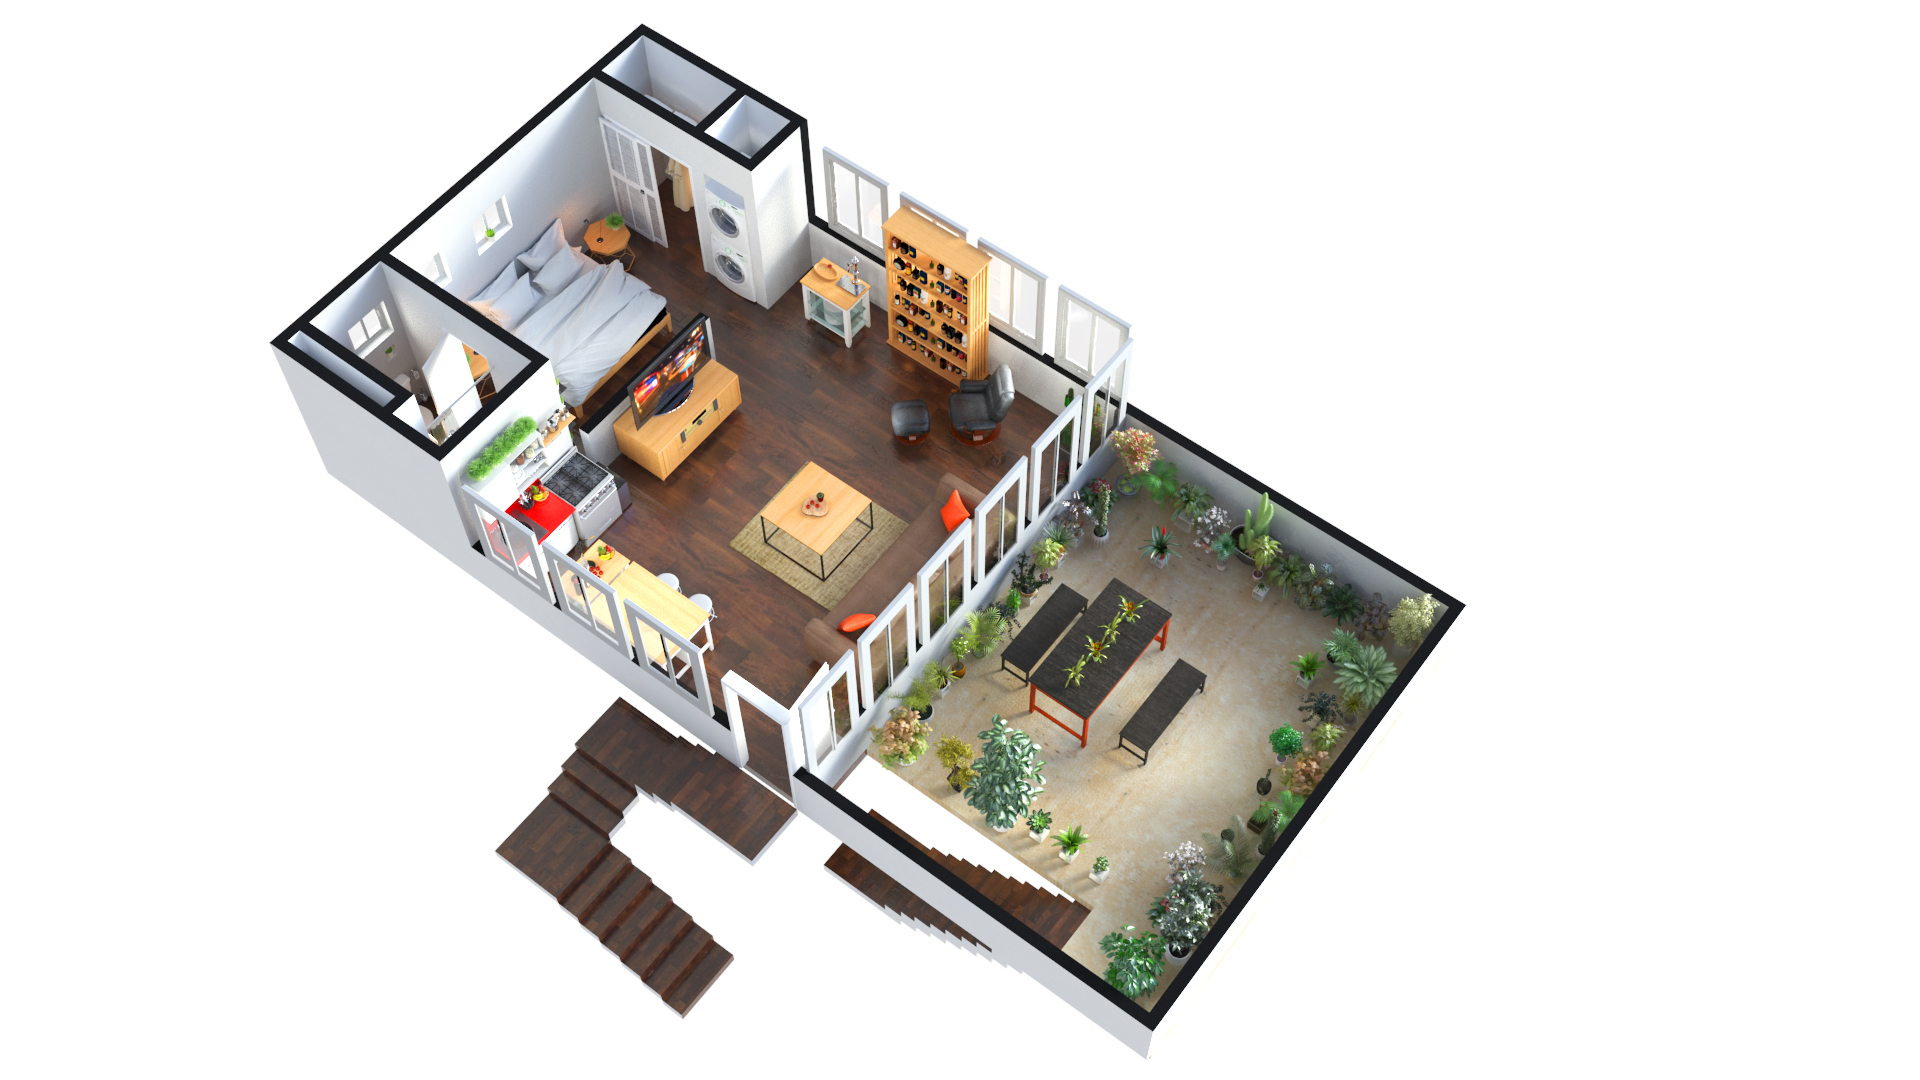 3d floor plan design rayvat rendering studio archello for 3d floor plan